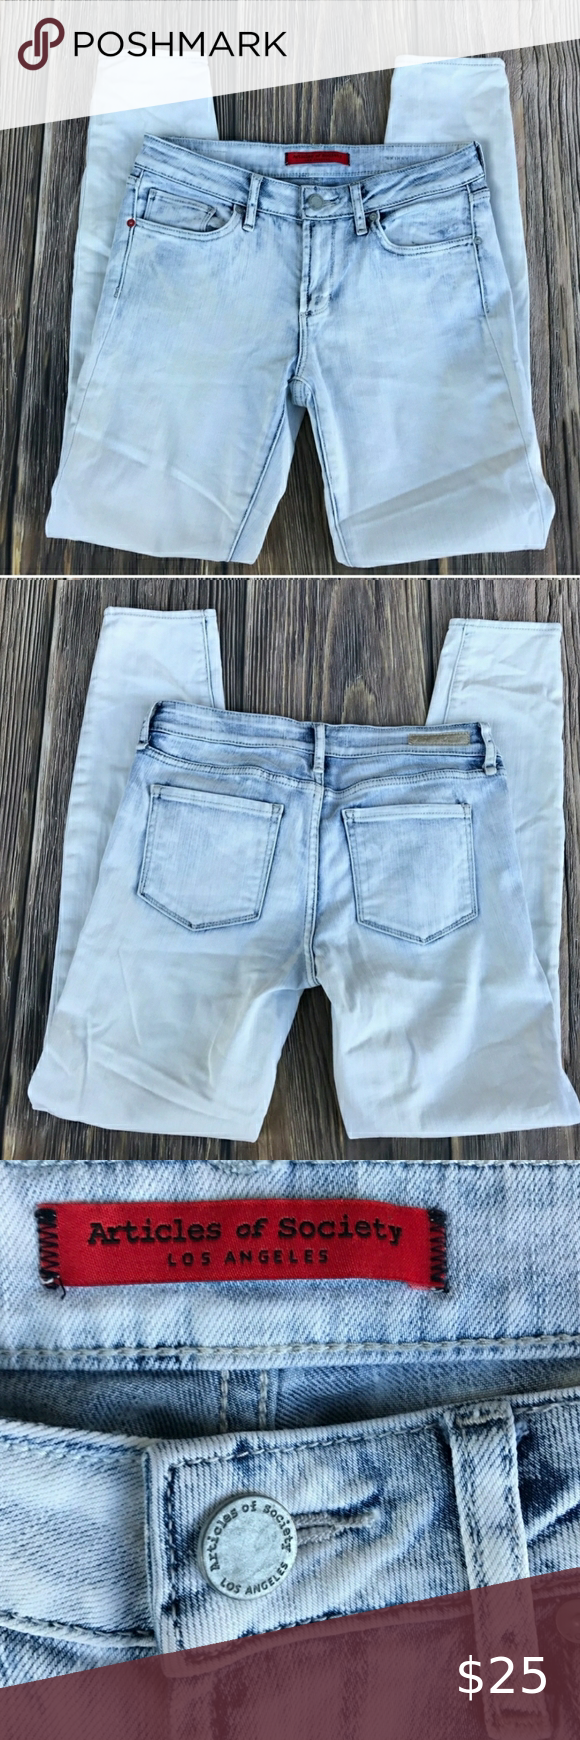 31c80f001bf99874753ba5503d893b03 - How To Get Dirt Stains Out Of Light Jeans